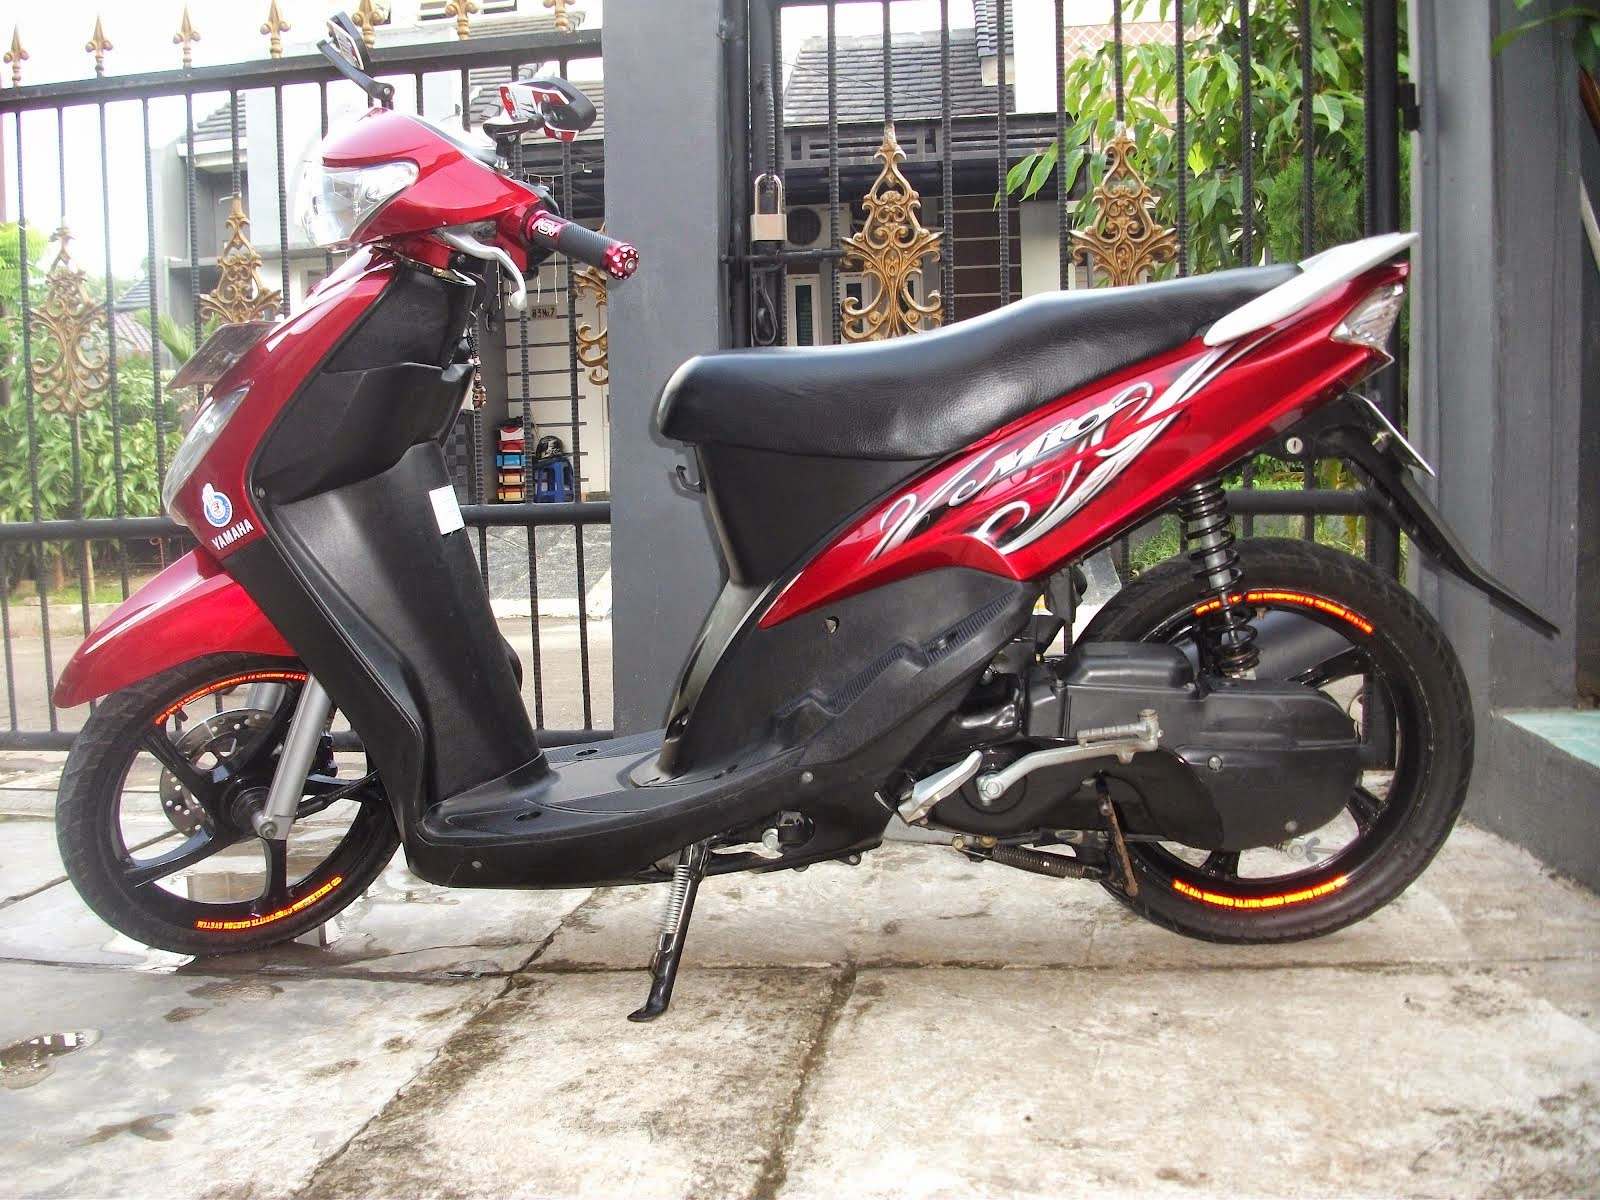 modifikasi motor mio sporty warna merah terkeren